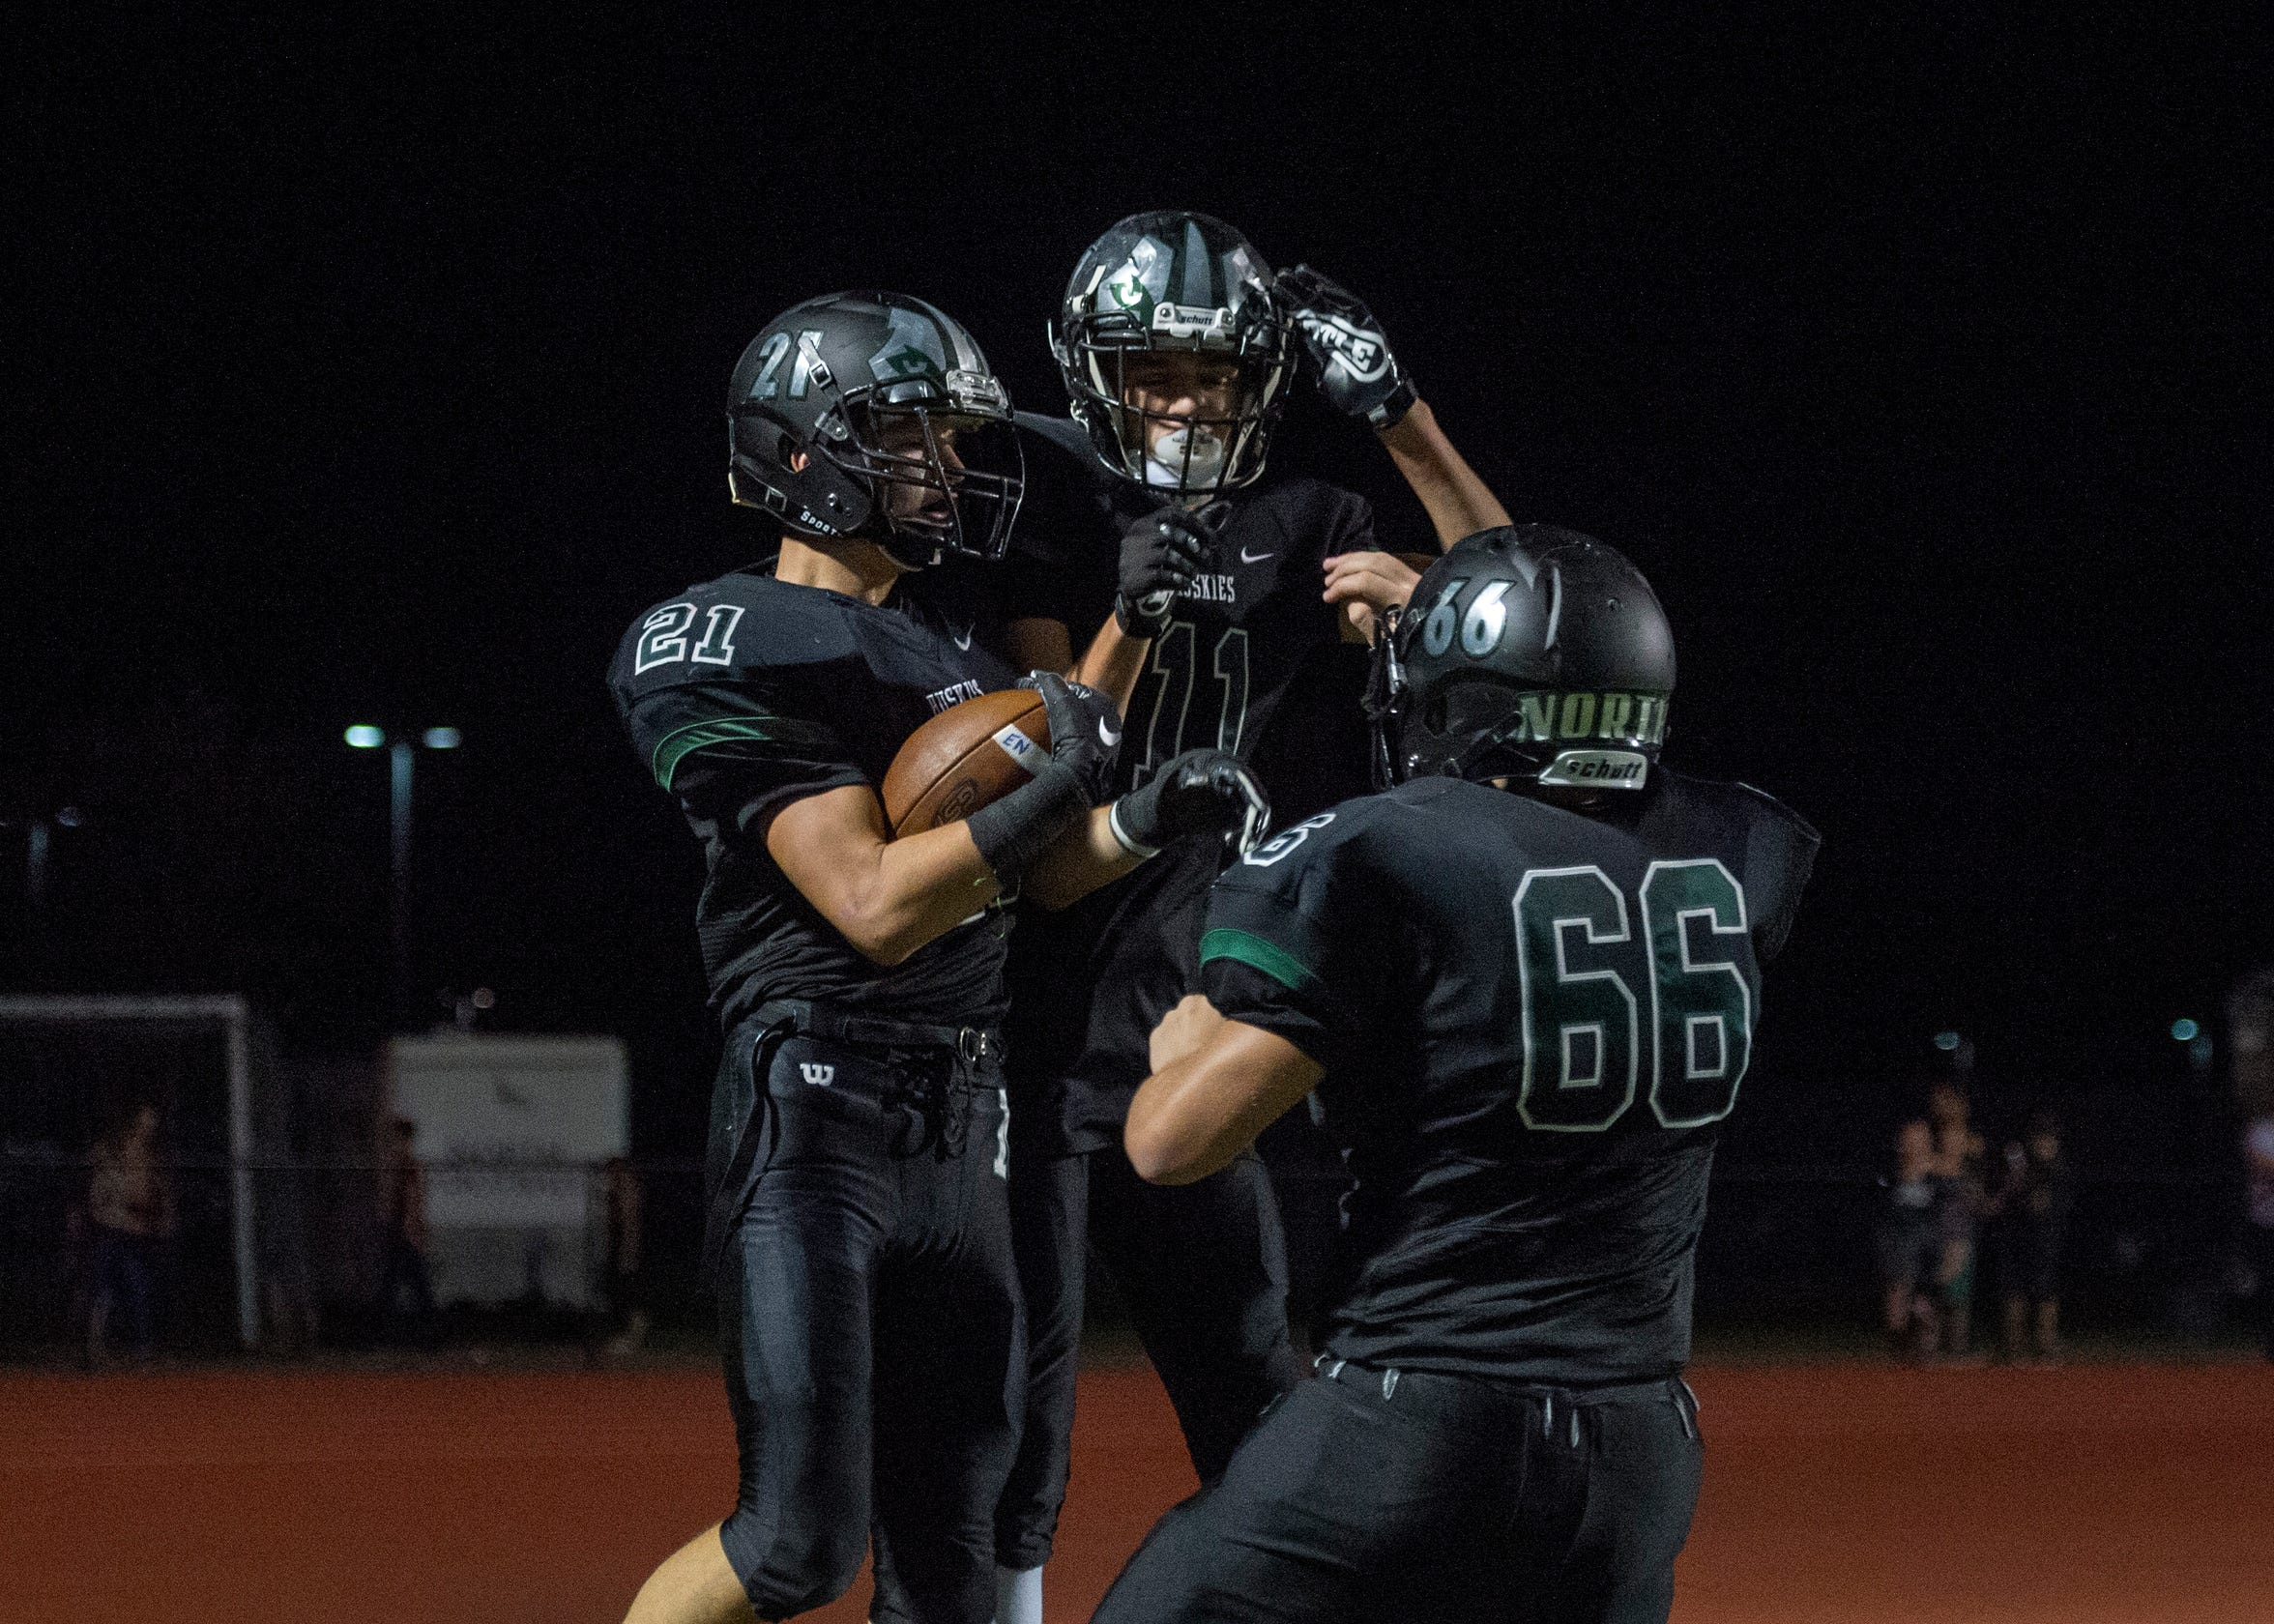 North's Dylan Mckinney (21), Seth Seniour (11) and Kyle Draper (66) celebrate after a touchdown during the North vs Mater Dei game at Bundrant Stadium on Friday, Sept. 14, 2018.